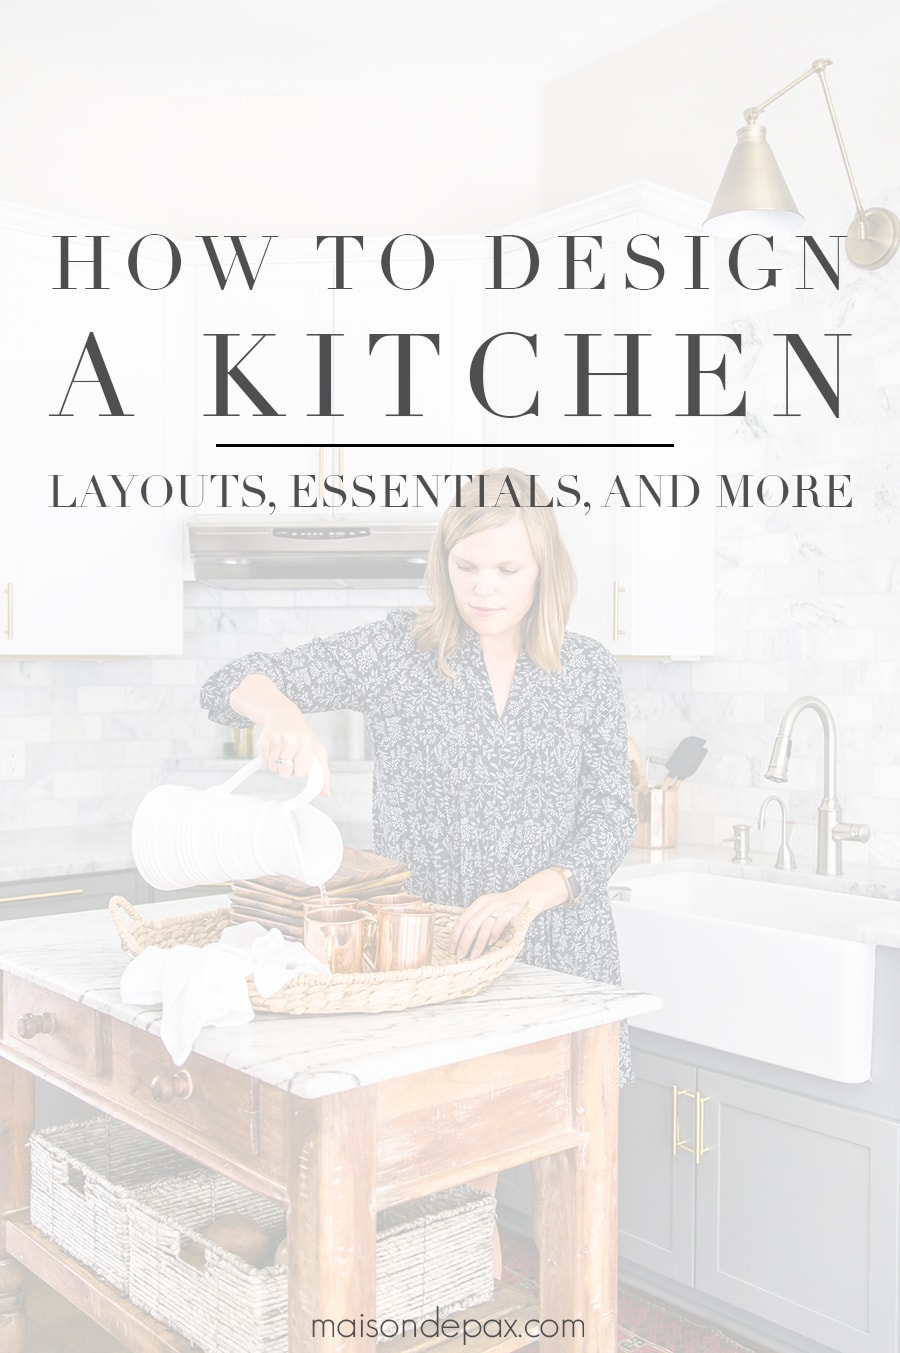 how to design a kitchen - maison de pax